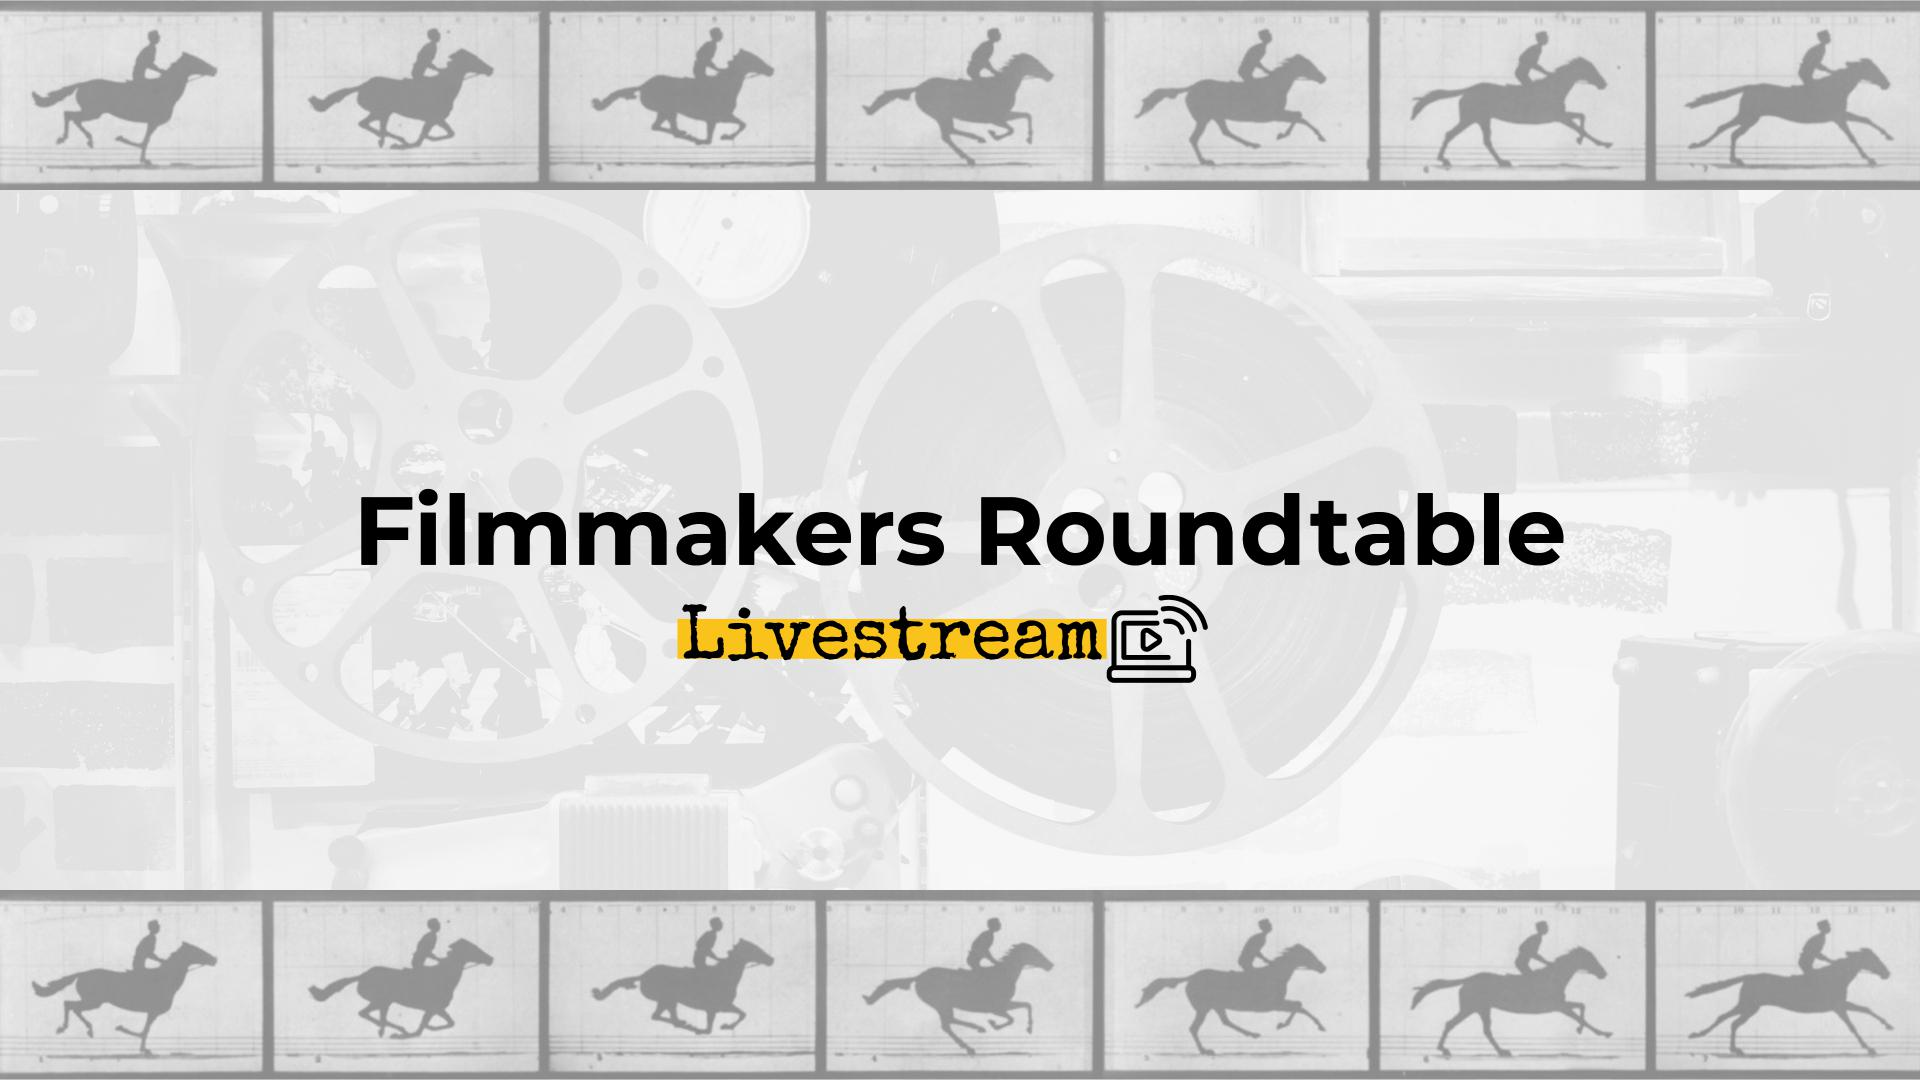 Filmmakers Roundtable 2